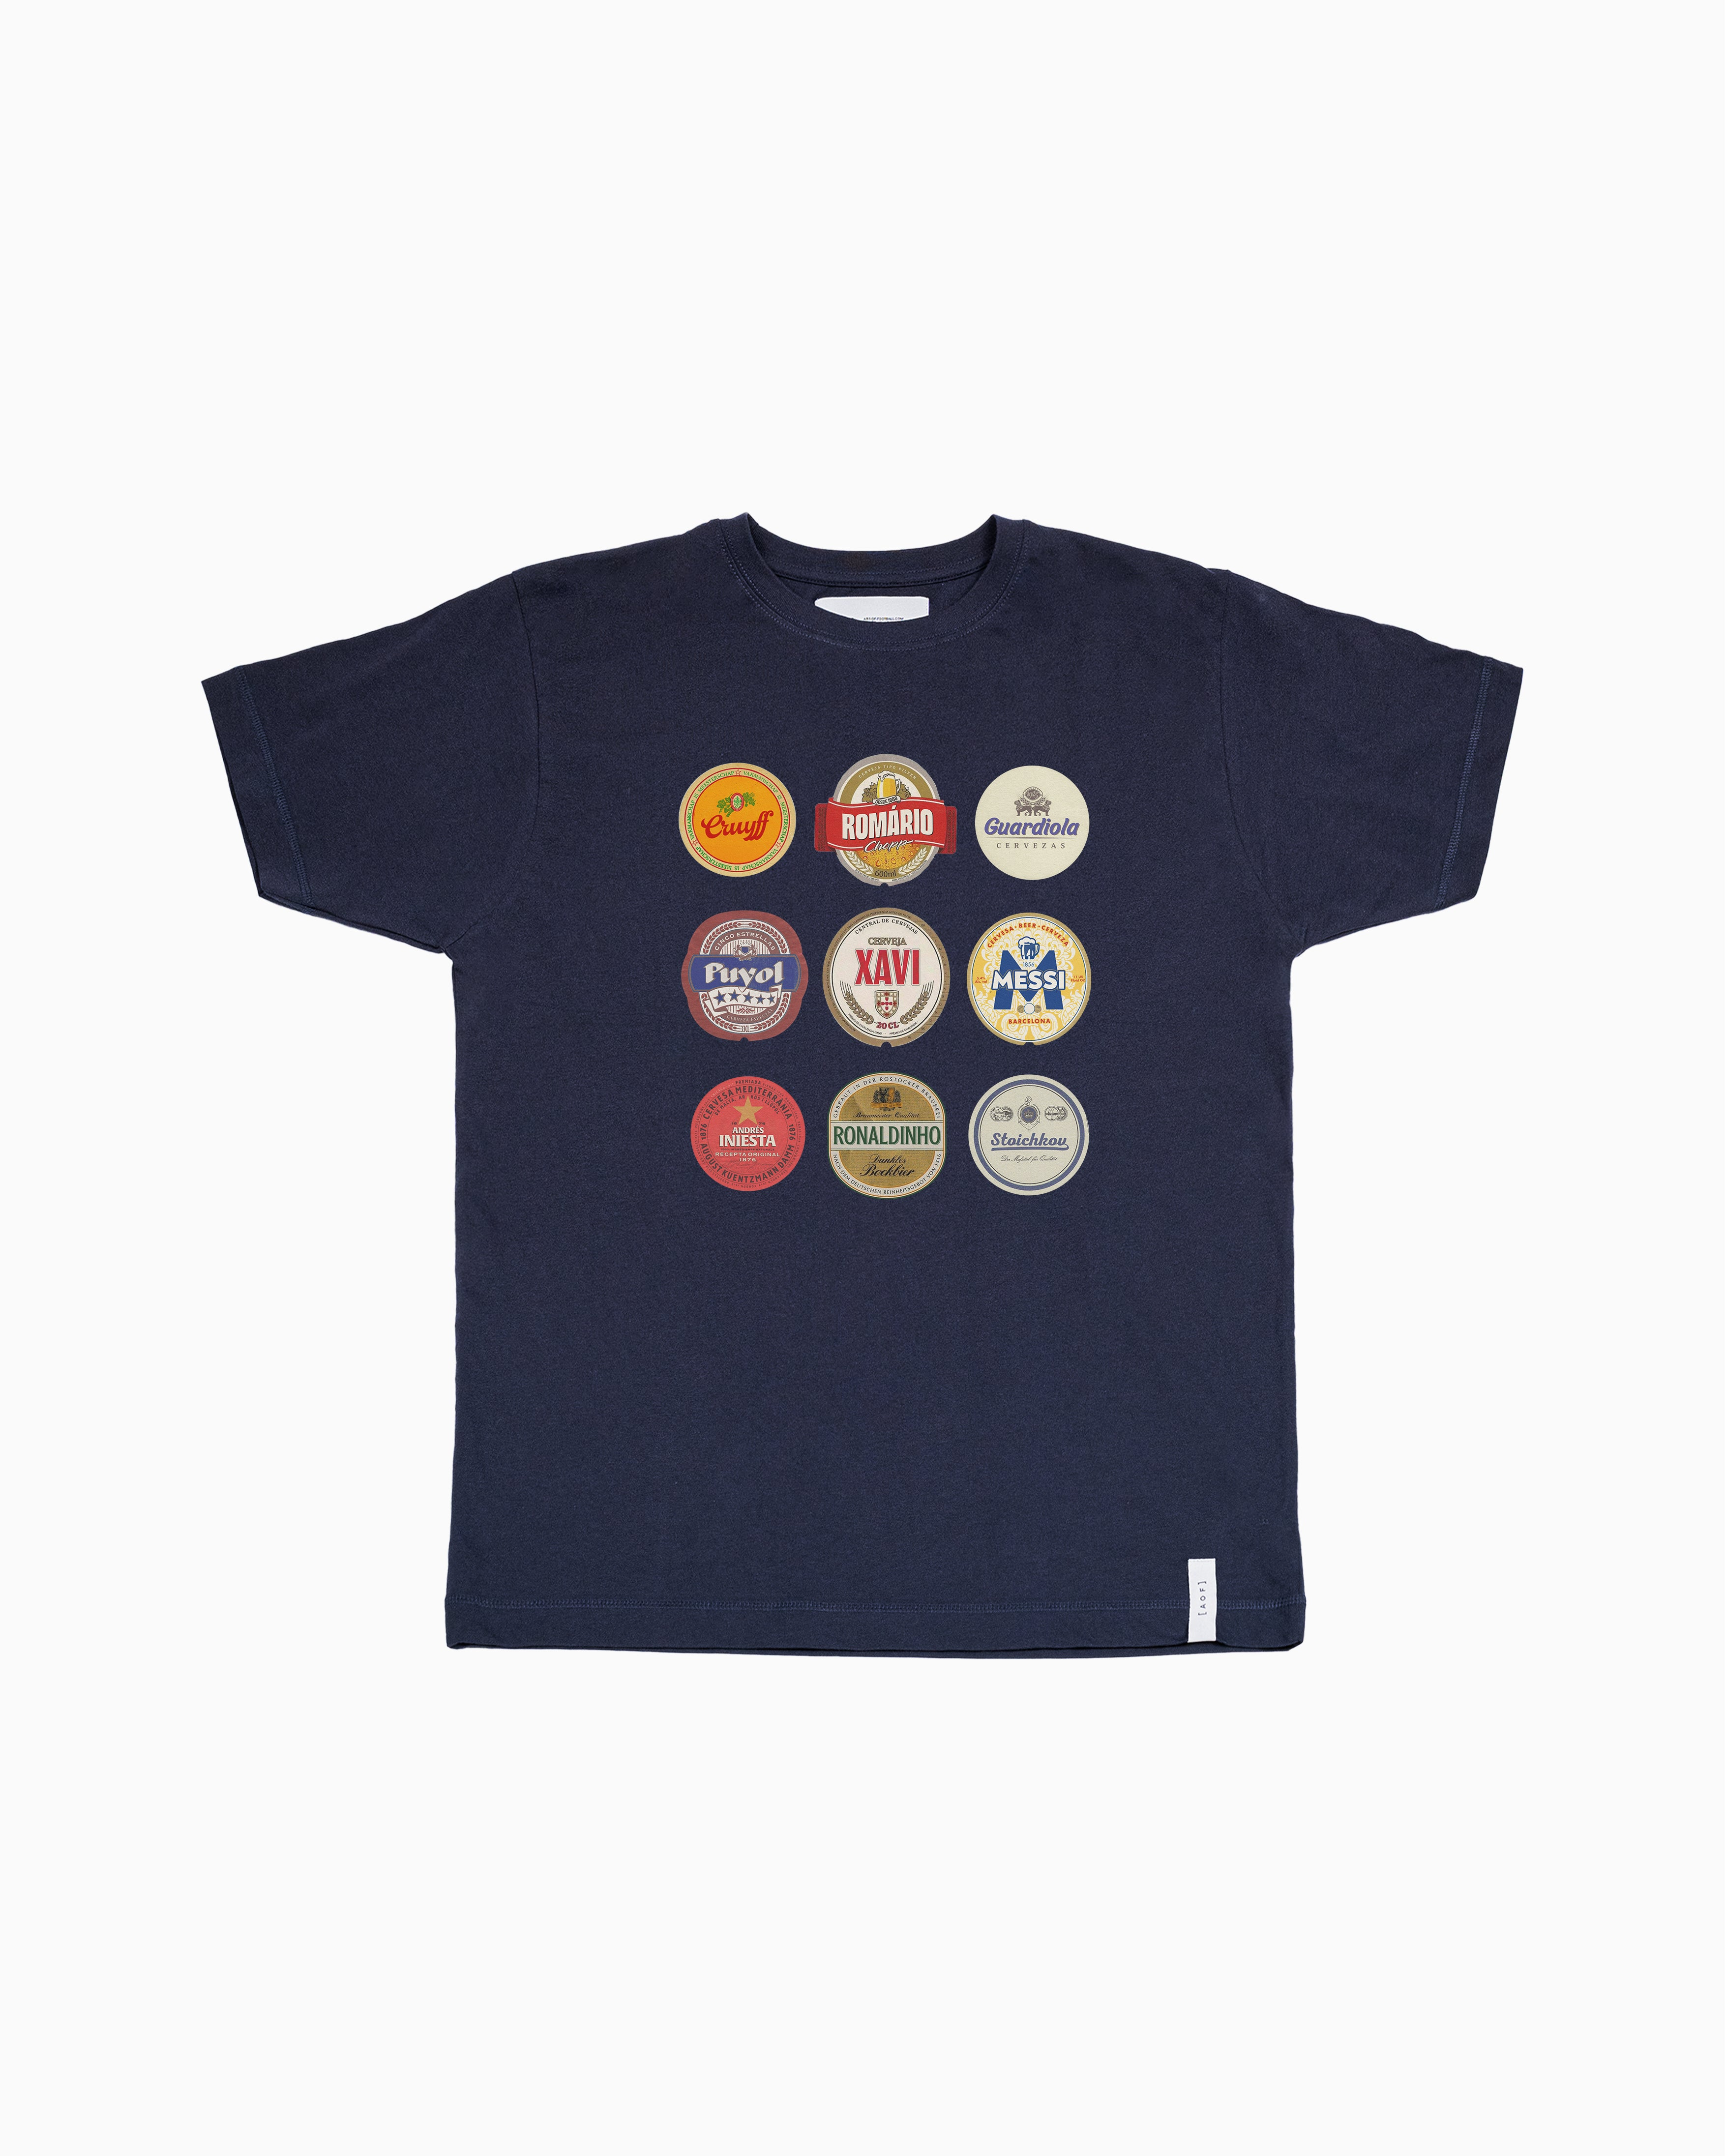 Camp Nou Brewery - Tee or Sweat